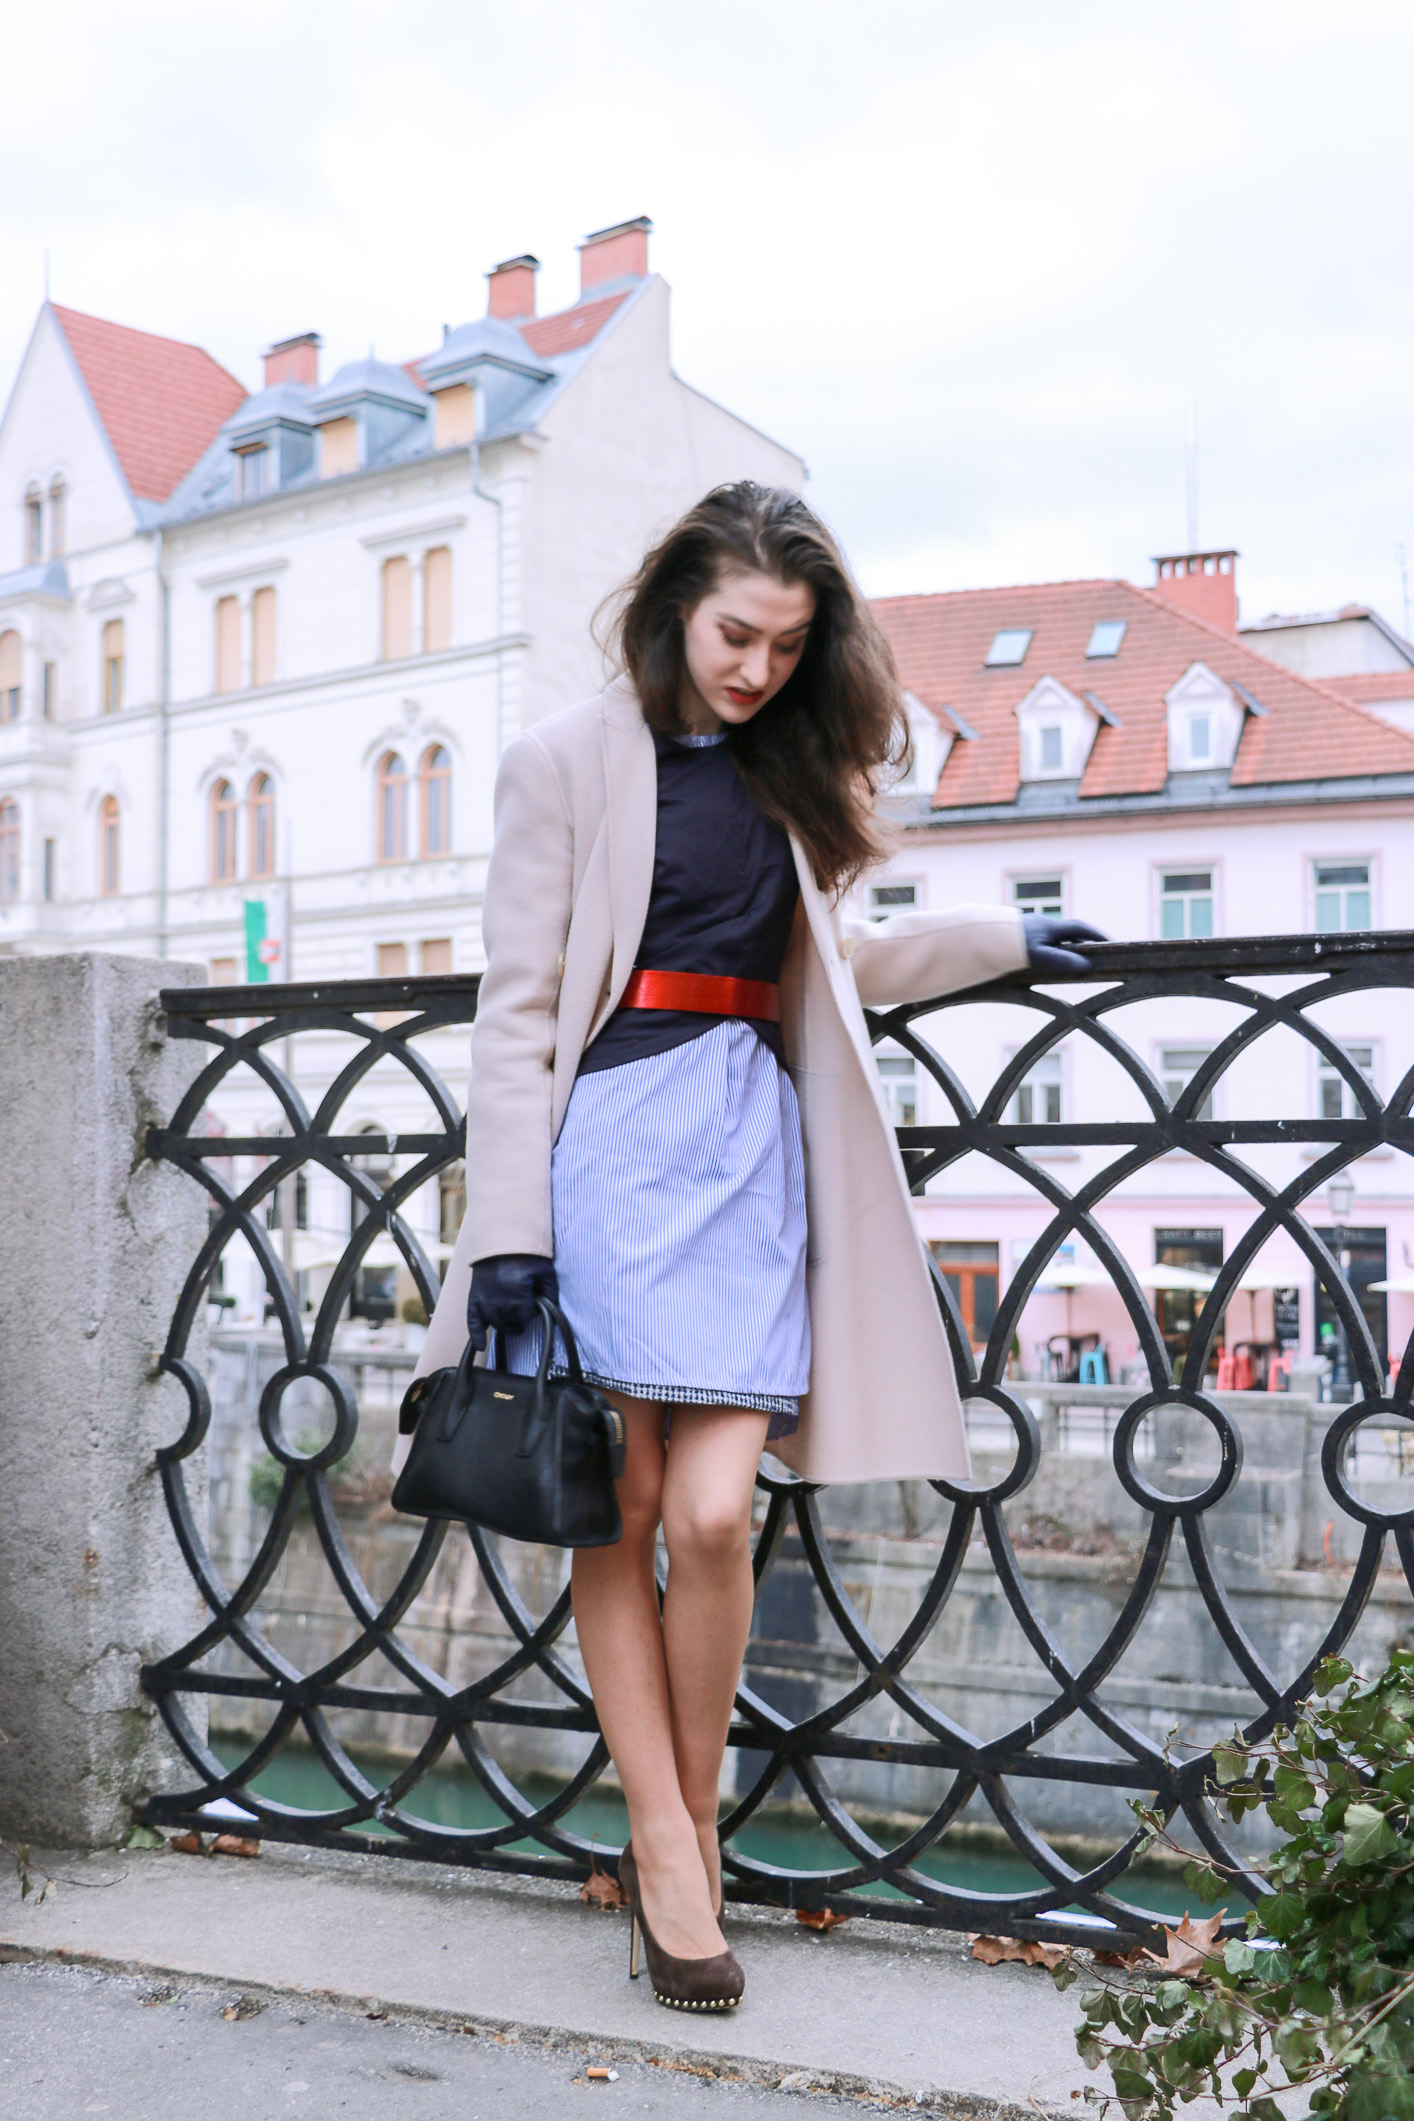 Fashion Blogger Veronika Lipar of Brunette from Wall Street sharing how to style his shirt